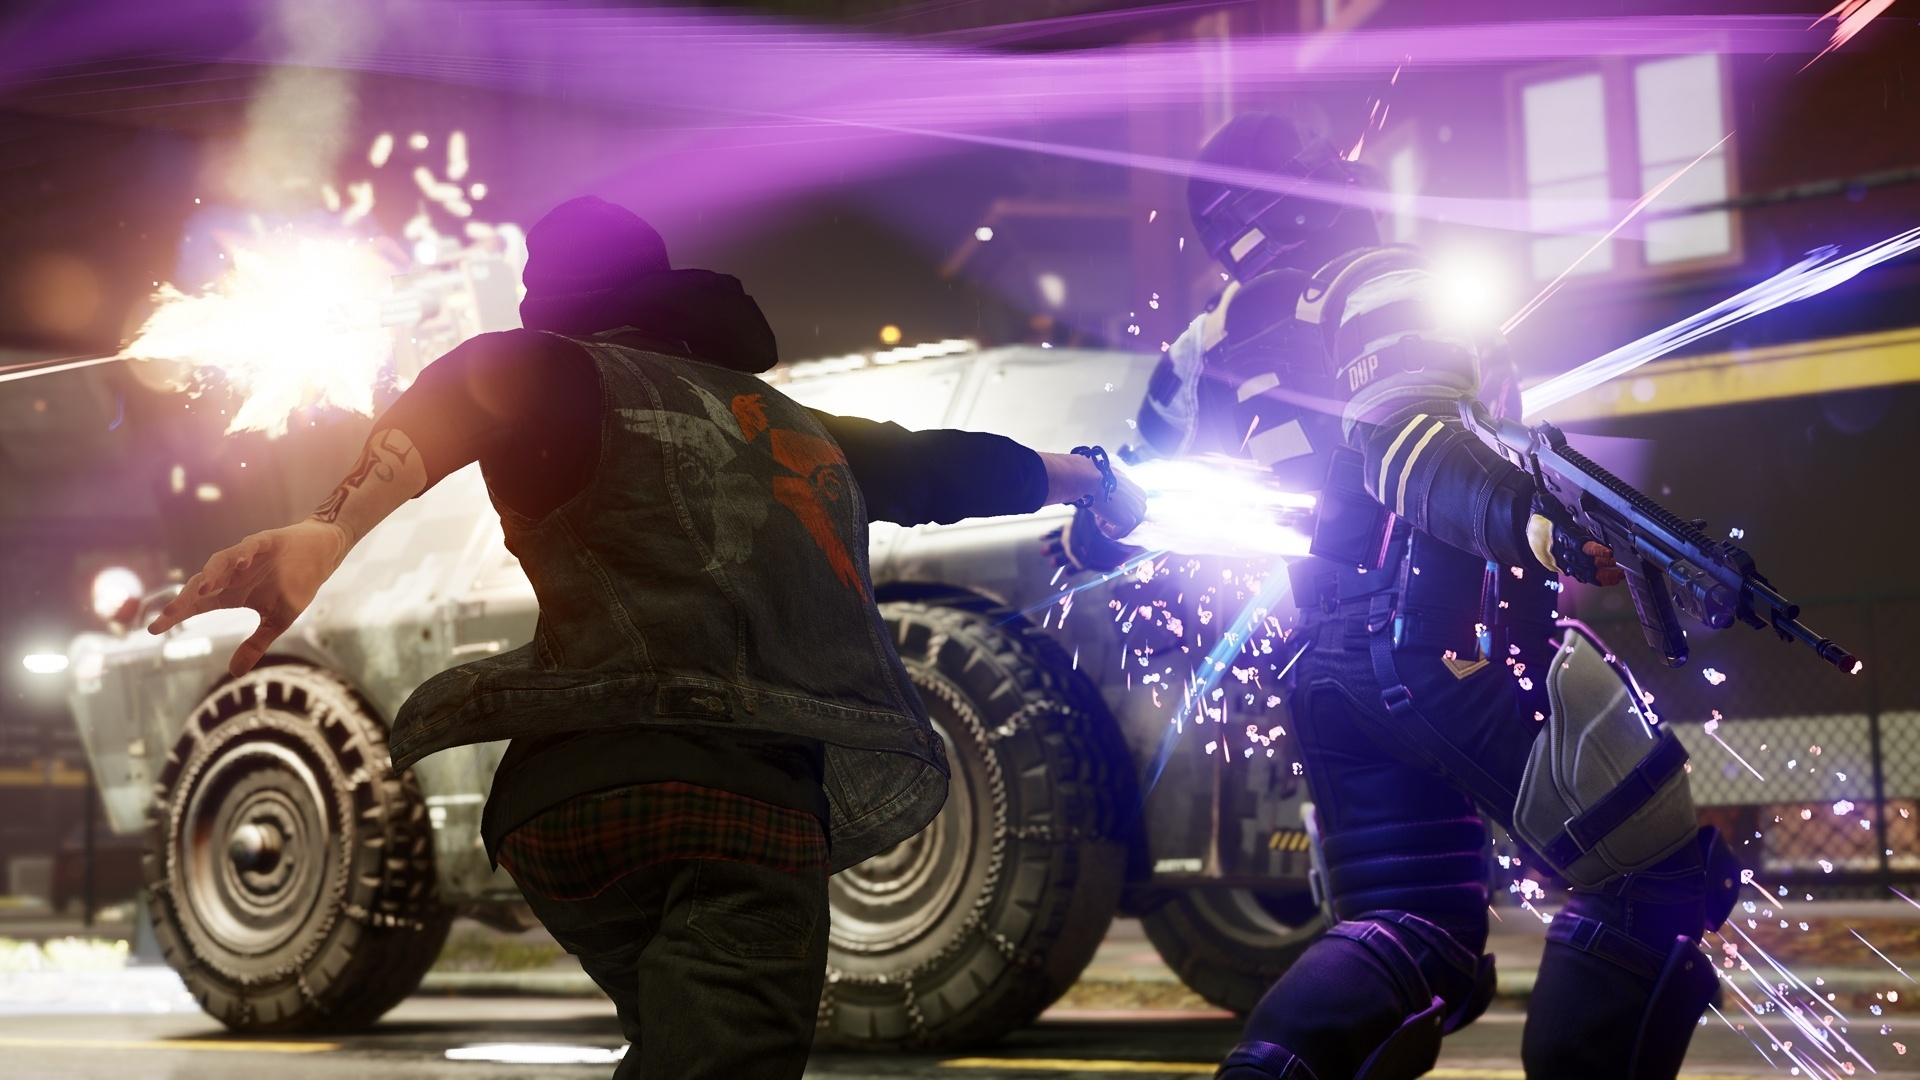 infamous-second-son-1394043043360_1920x1080